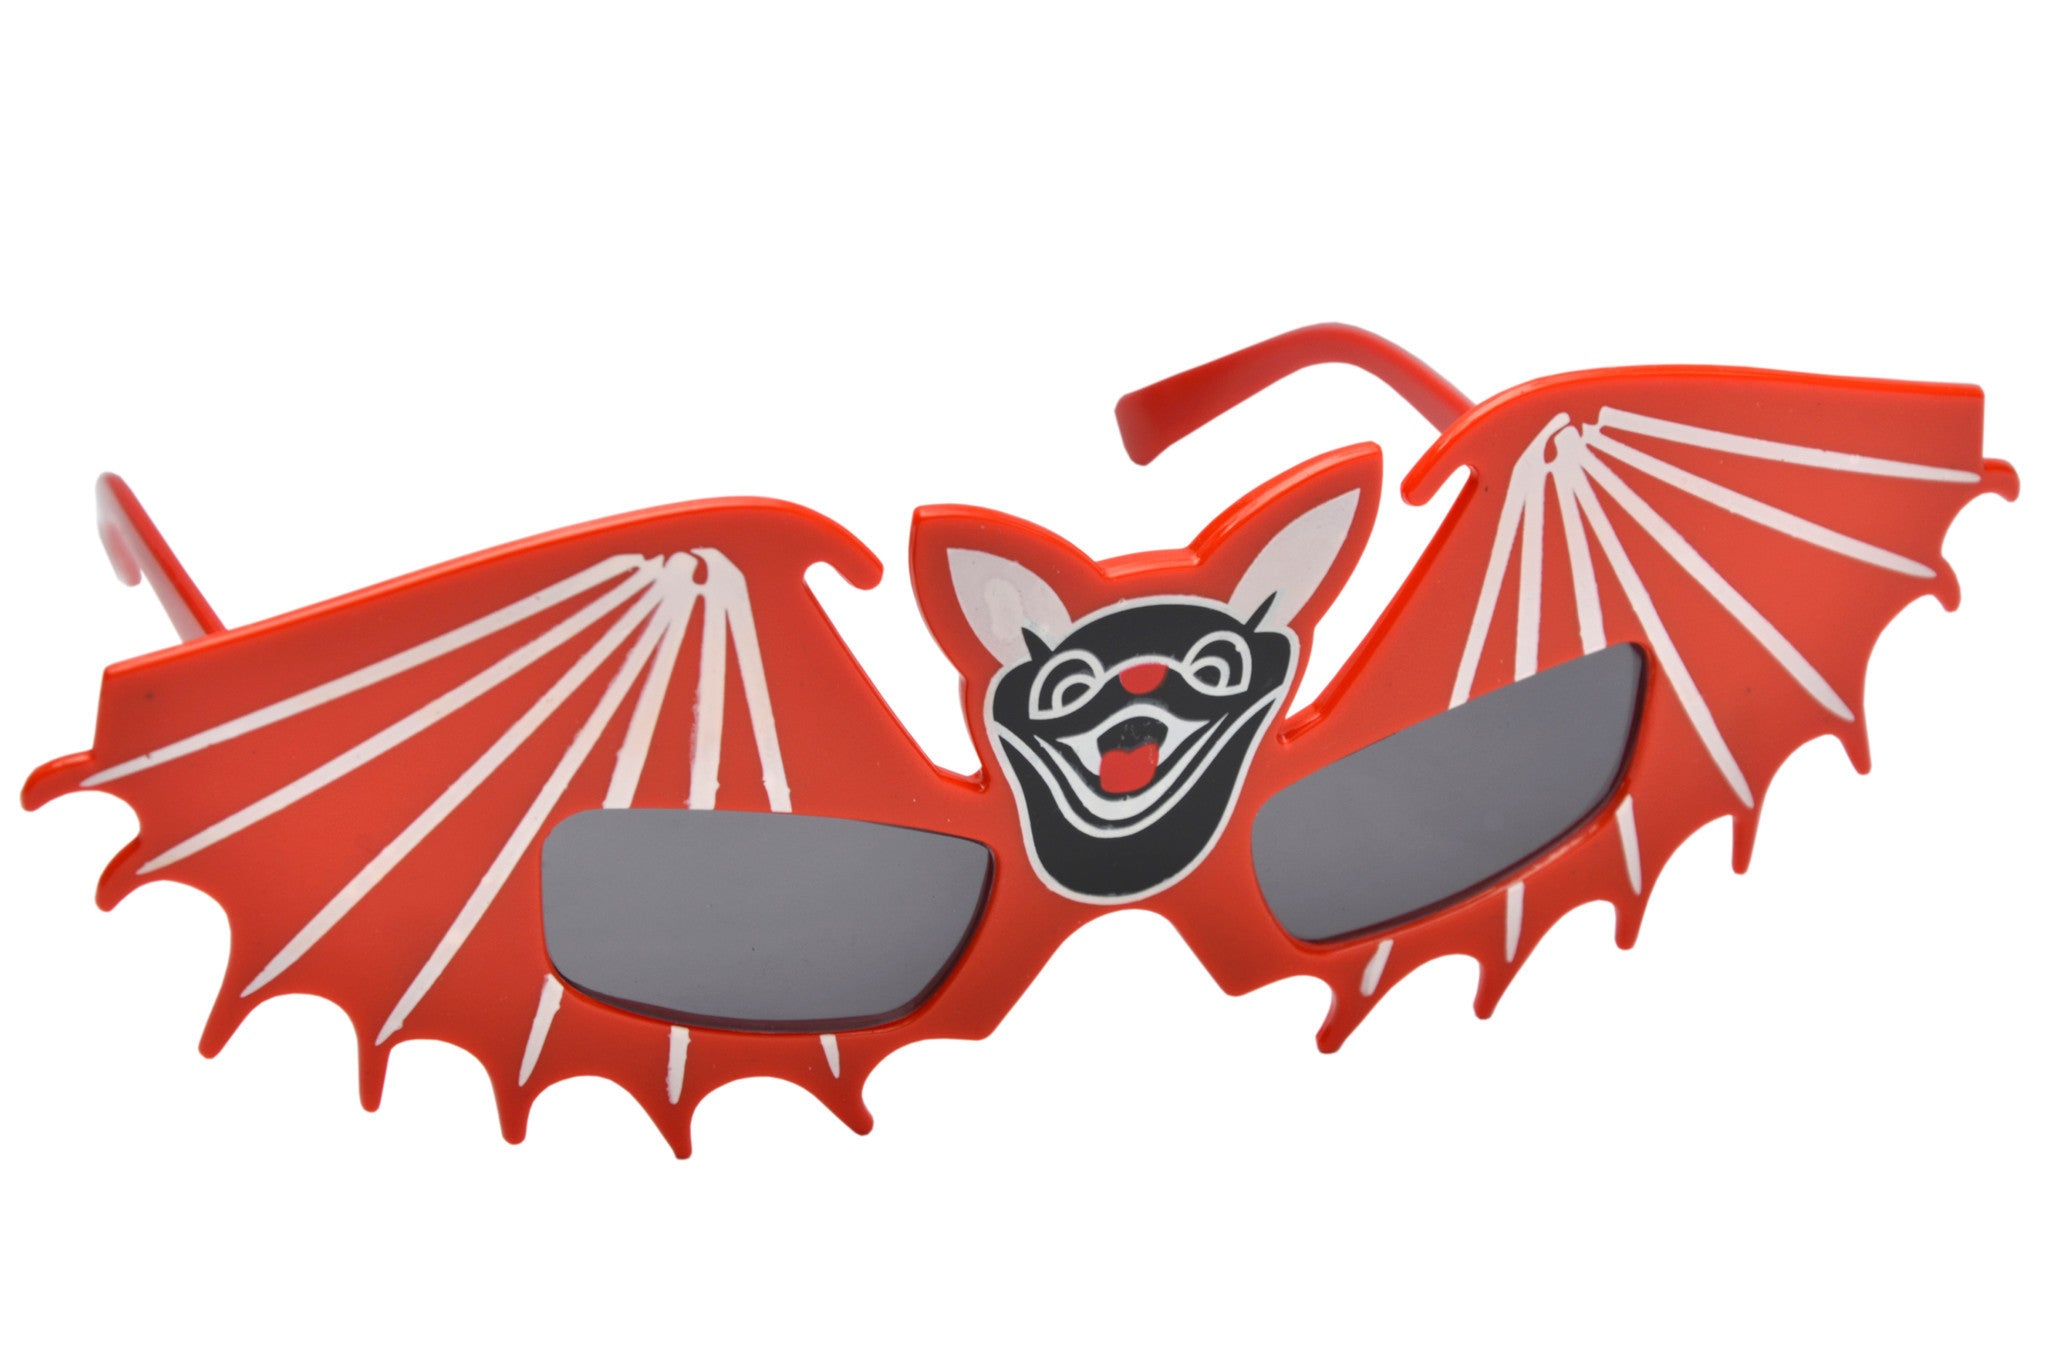 The Bat Red Goggle